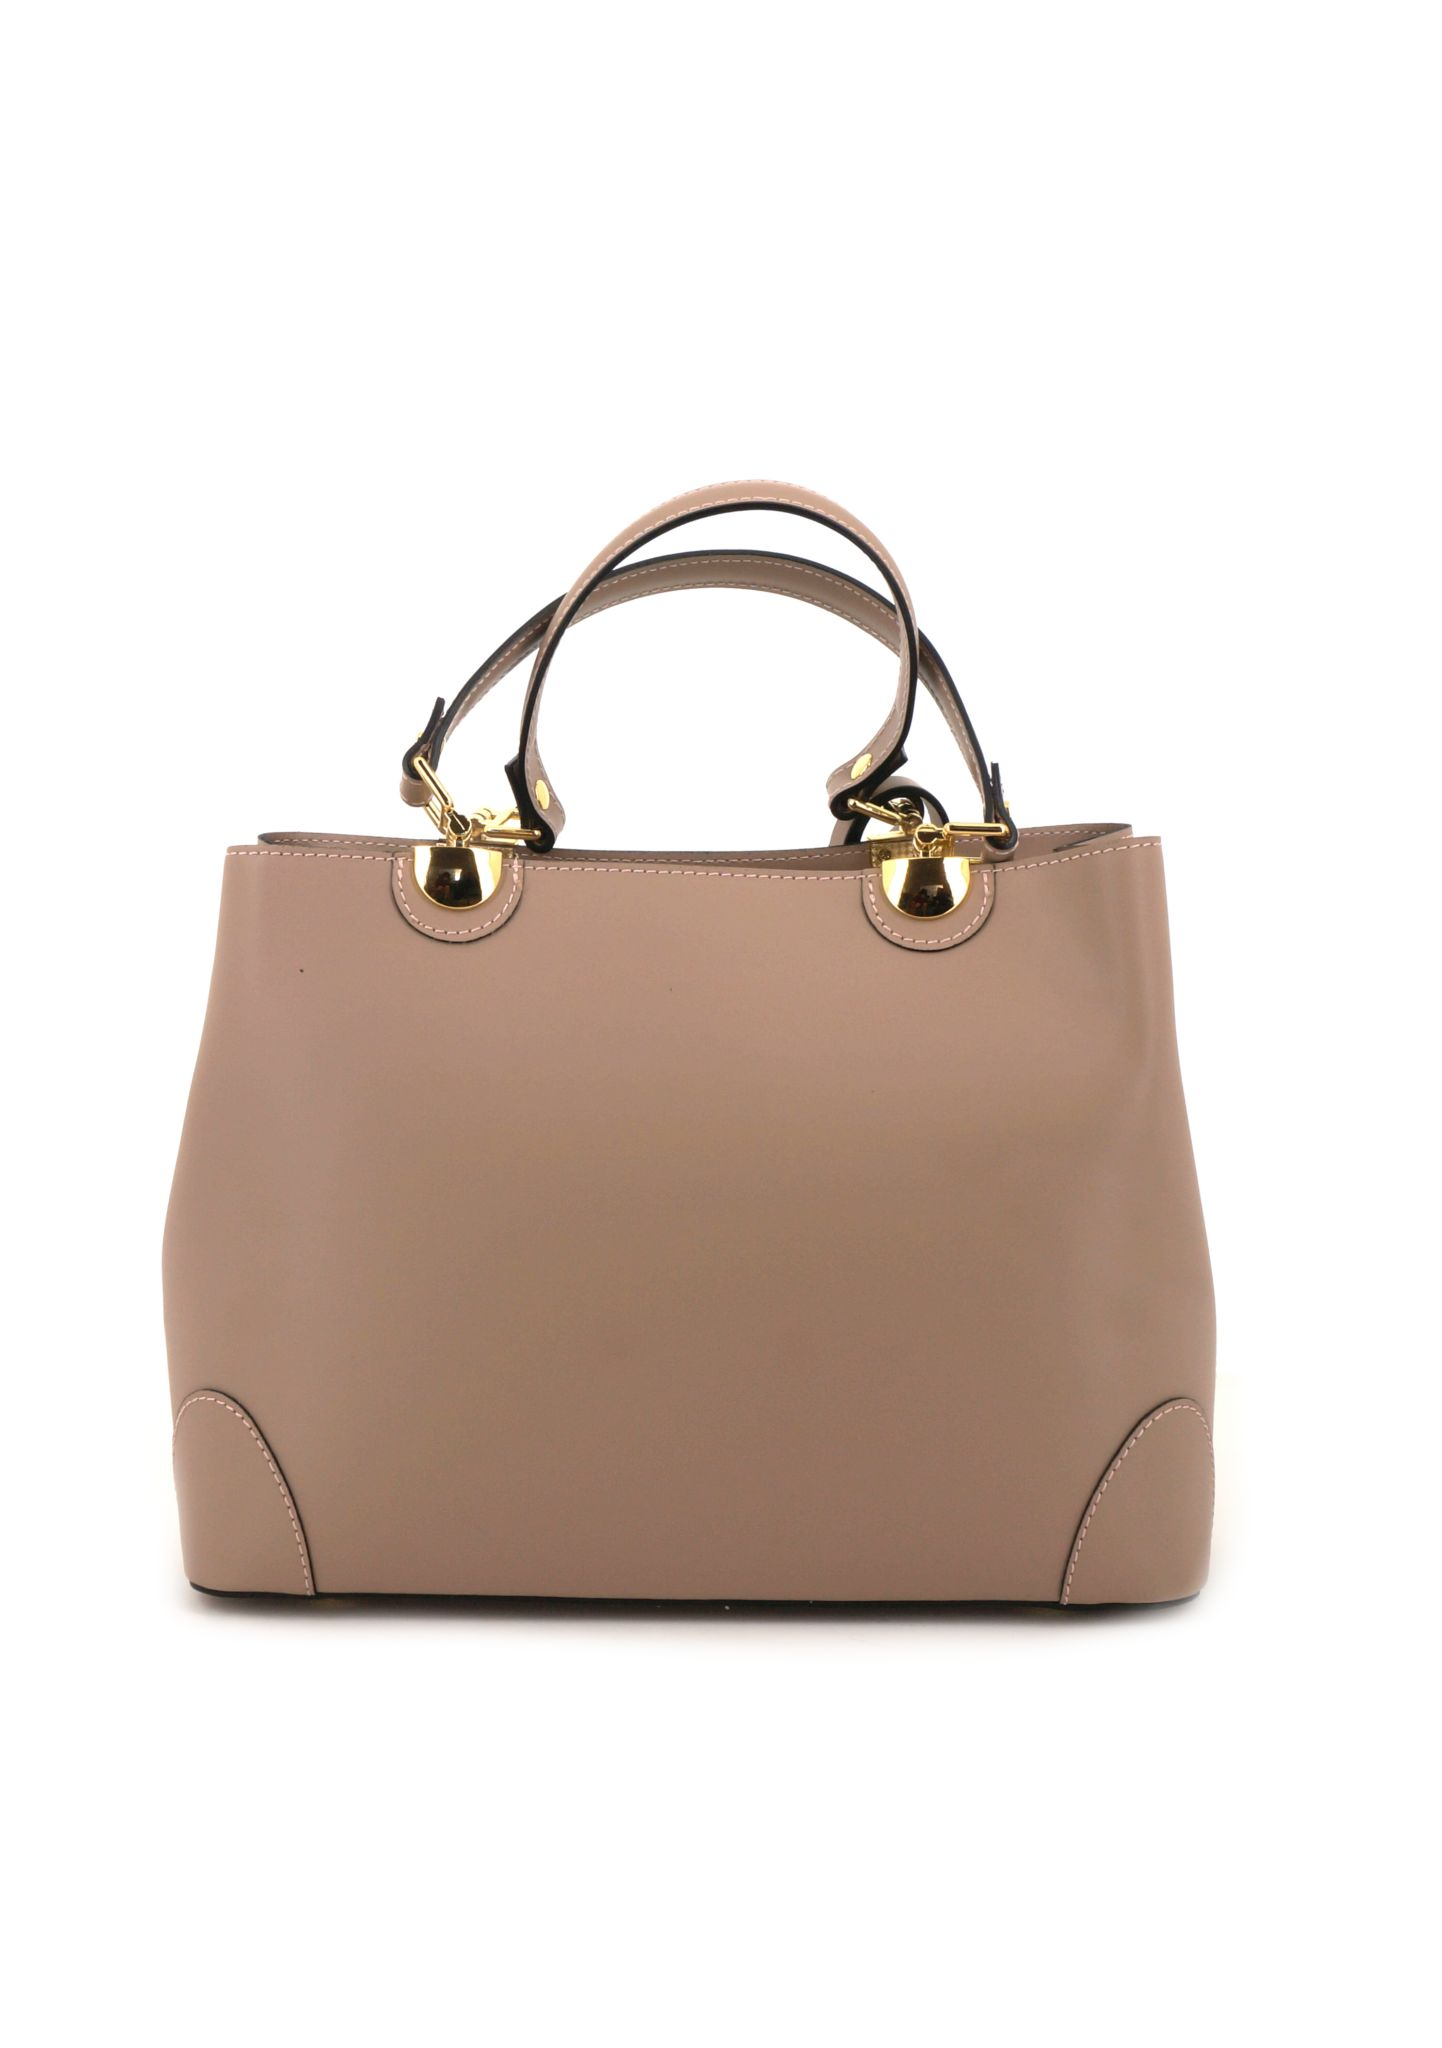 Beige Ruga Leather Double Handle Handbag With Strap 019 detail 4